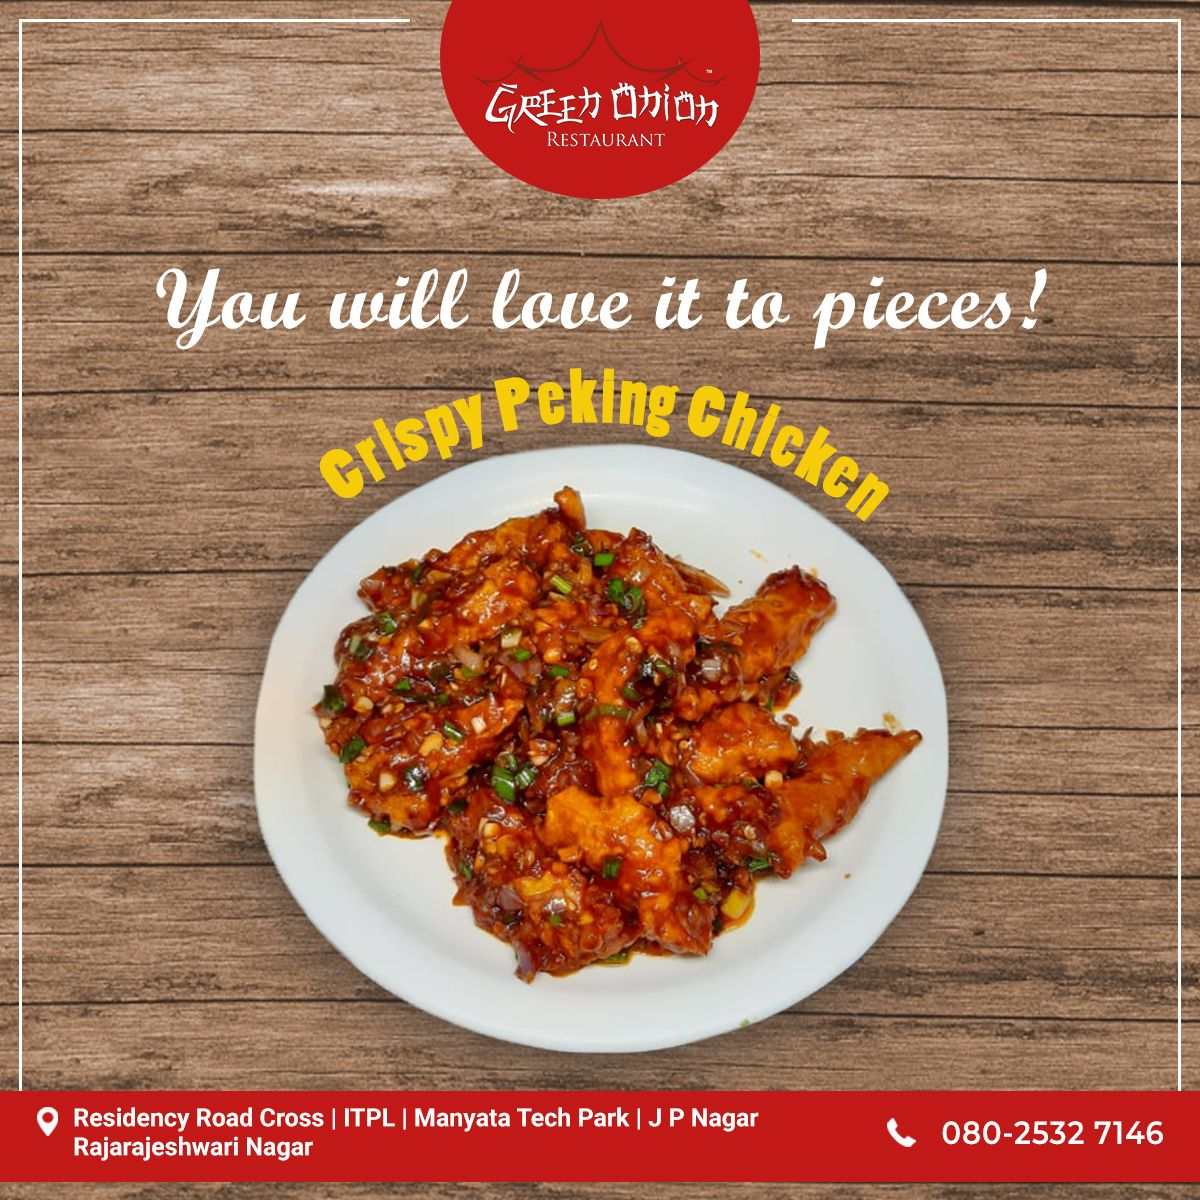 Get The Authentic Taste Of Chinese Flavours In Crispy Pecking Chicken At Greenonion Visit Our Nearest Green Onion Resta Food Chicken Dishes Chinese Restaurant